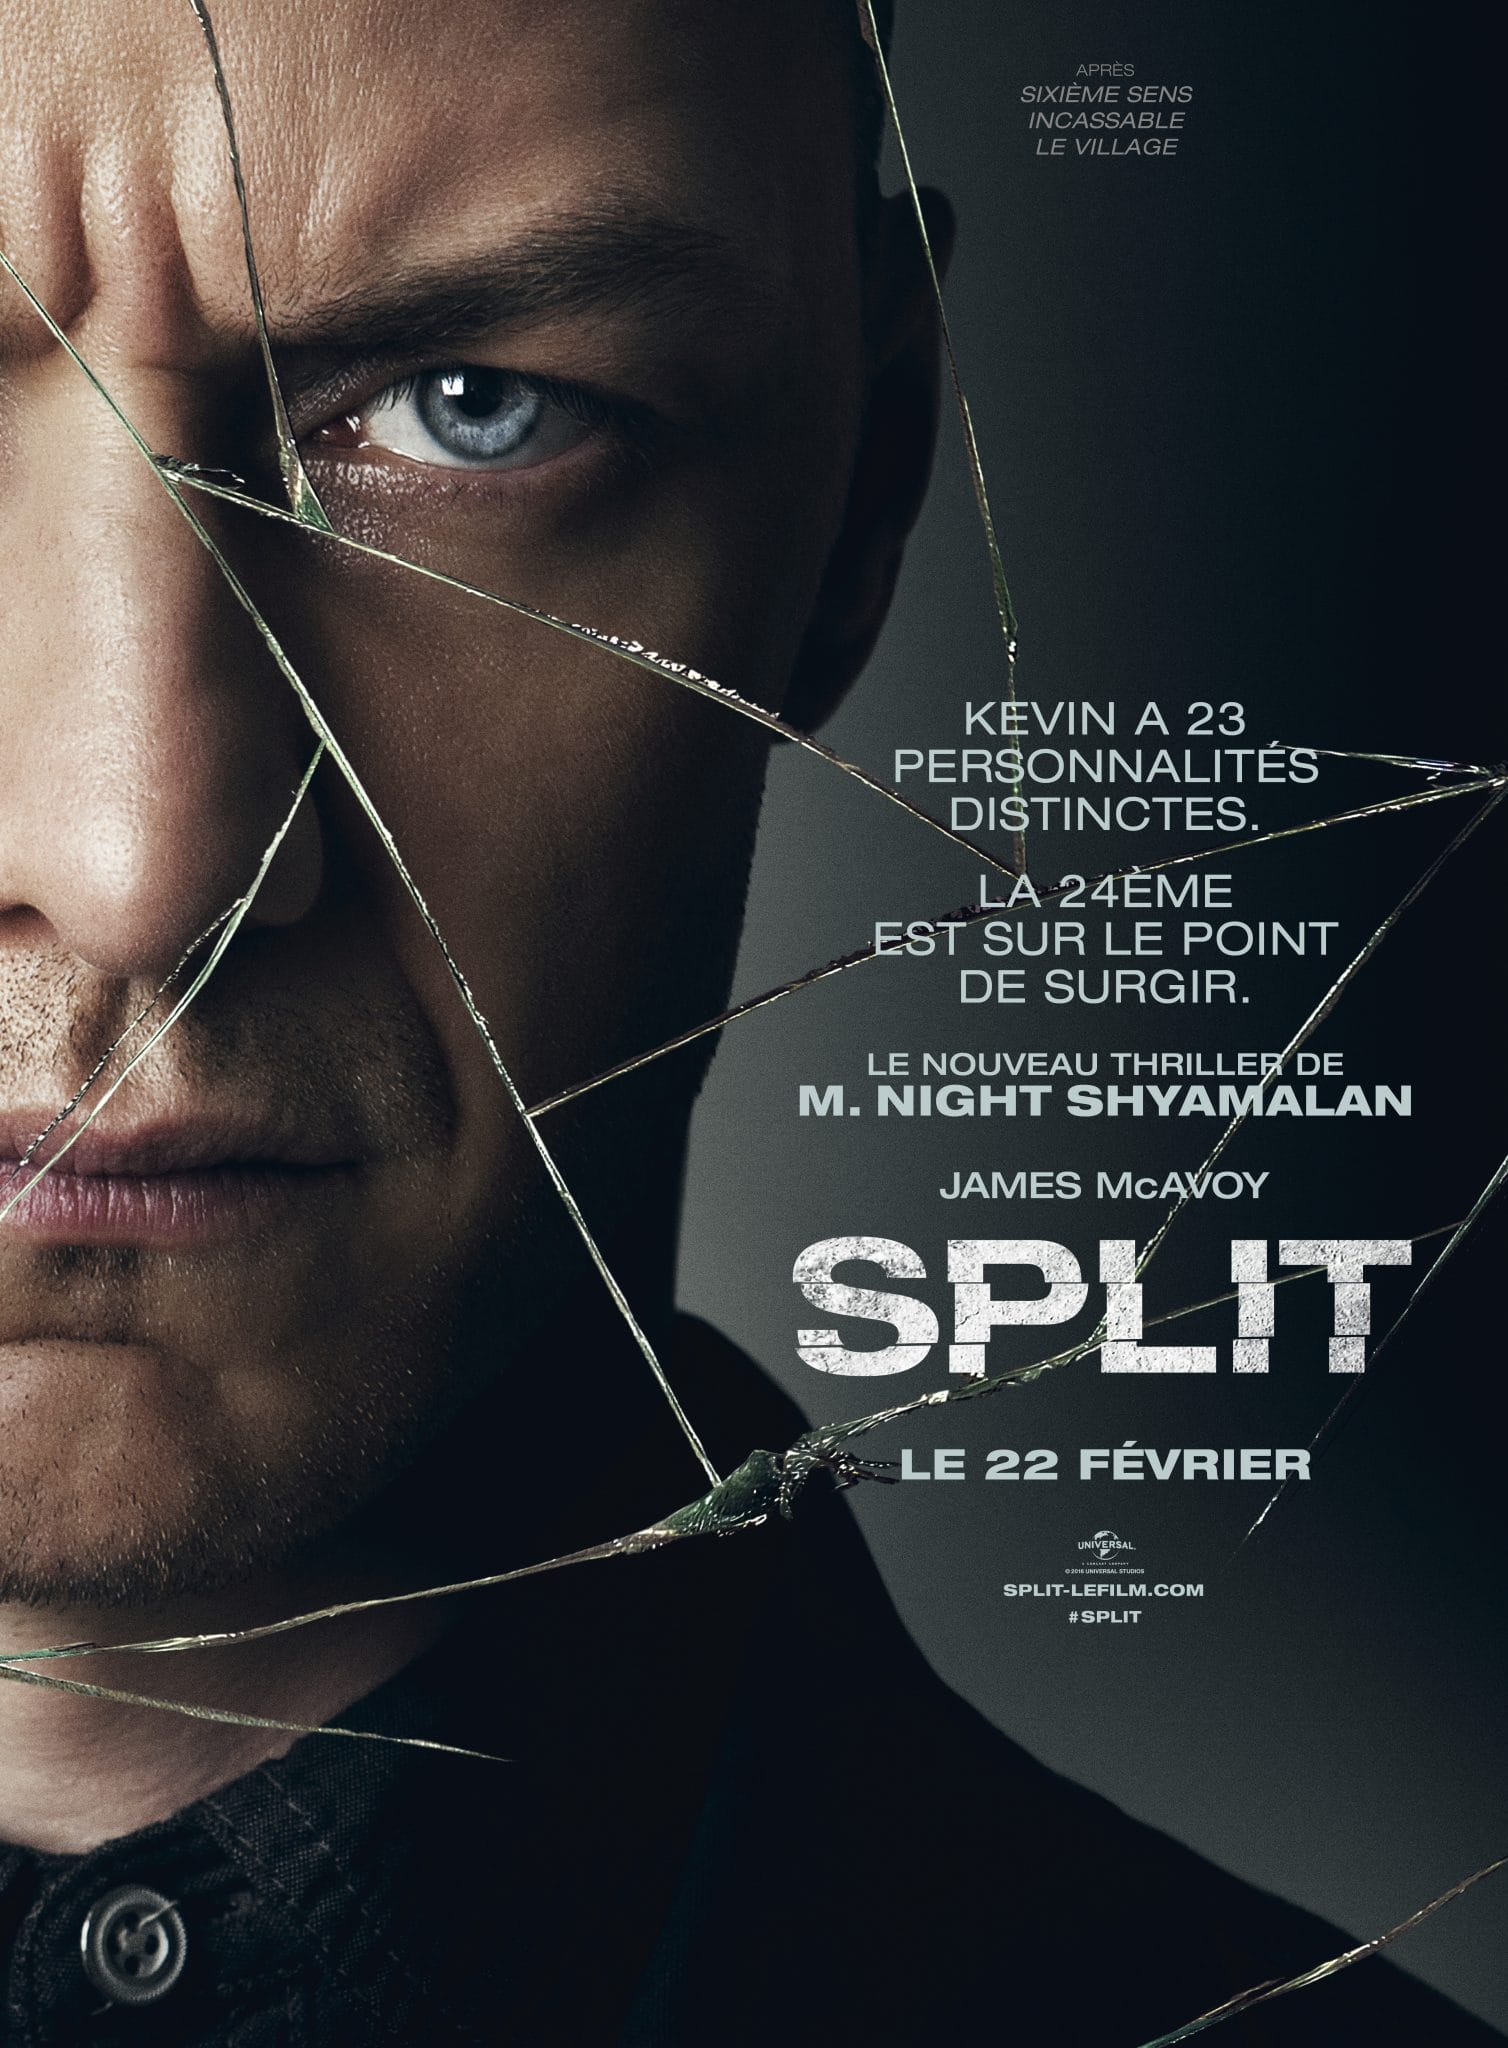 Split affiche night shyamalan